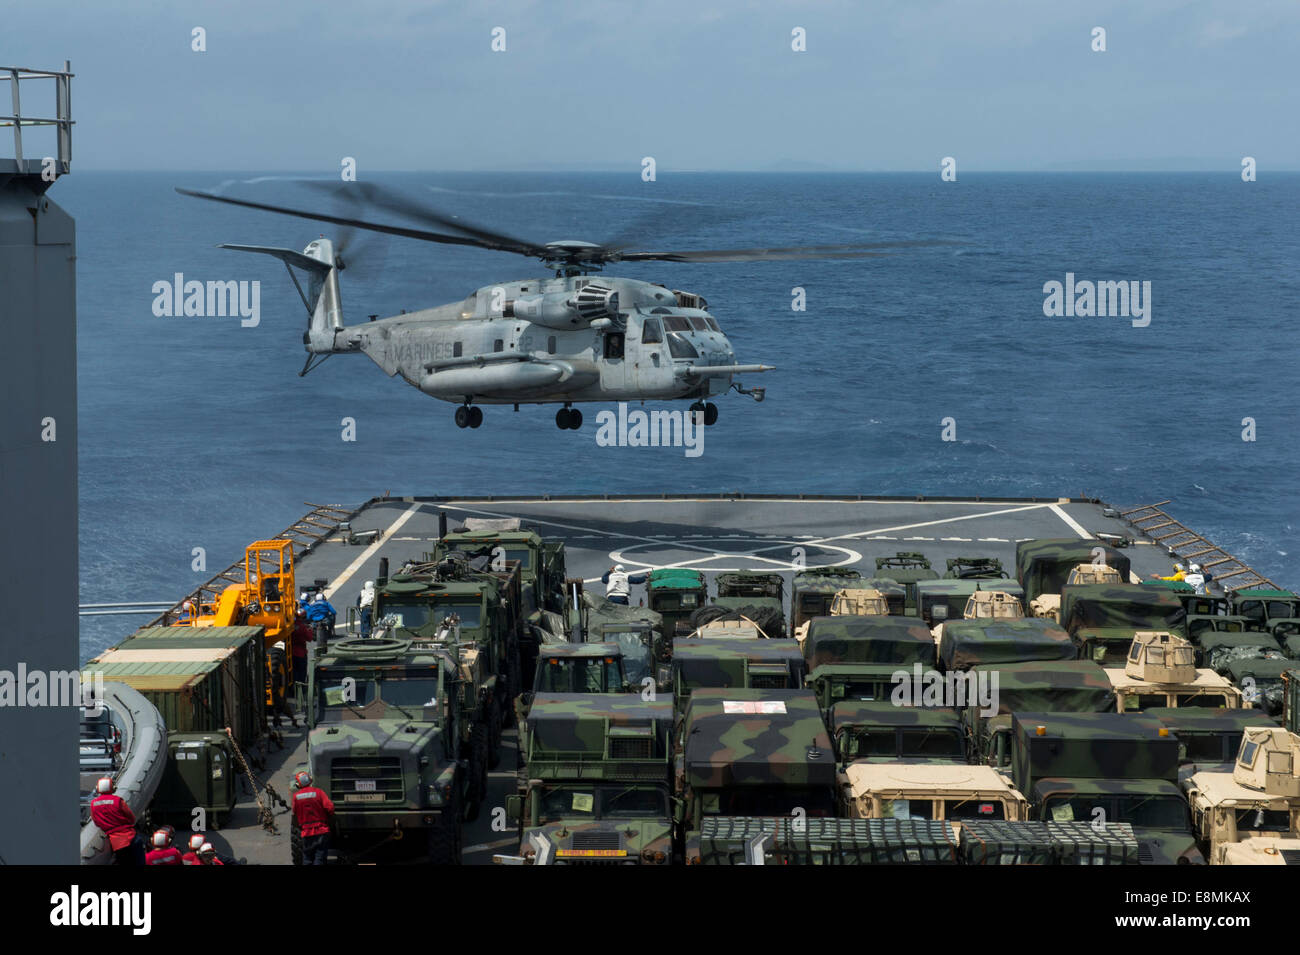 East China Sea, March 18, 2014 - A CH-53E Super Stallion helicopter prepares to land on the flight deck of the Whidbey - Stock Image